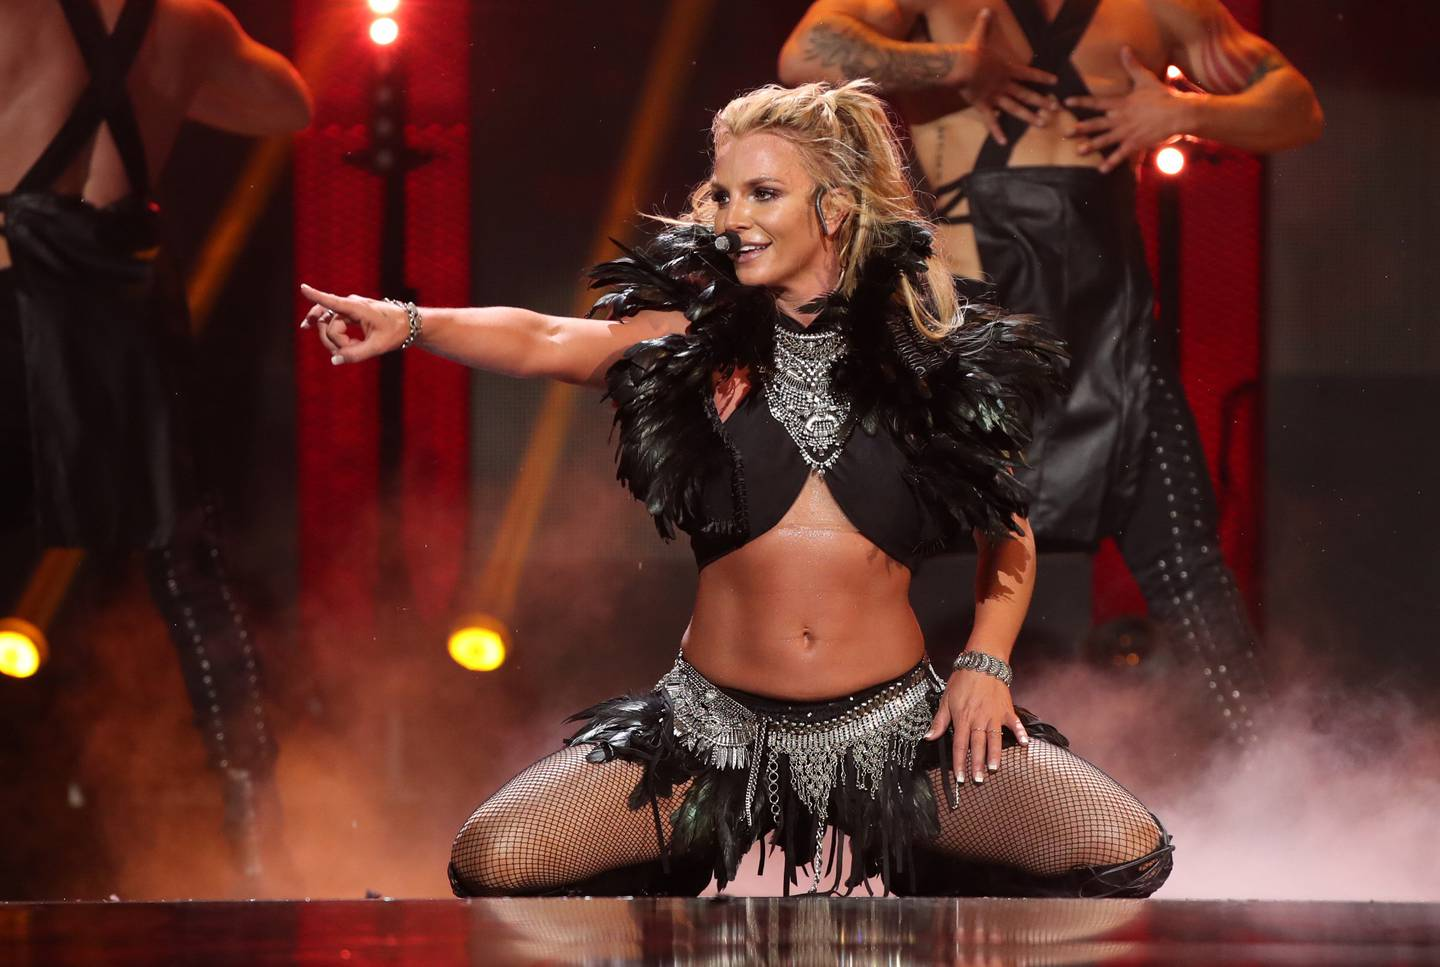 LAS VEGAS, NV - SEPTEMBER 24: Singer Britney Spears performs onstage at the 2016 iHeartRadio Music Festival at T-Mobile Arena on September 24, 2016 in Las Vegas, Nevada.   Christopher Polk/Getty Images for iHeartMedia/AFP == FOR NEWSPAPERS, INTERNET, TELCOS & TELEVISION USE ONLY ==